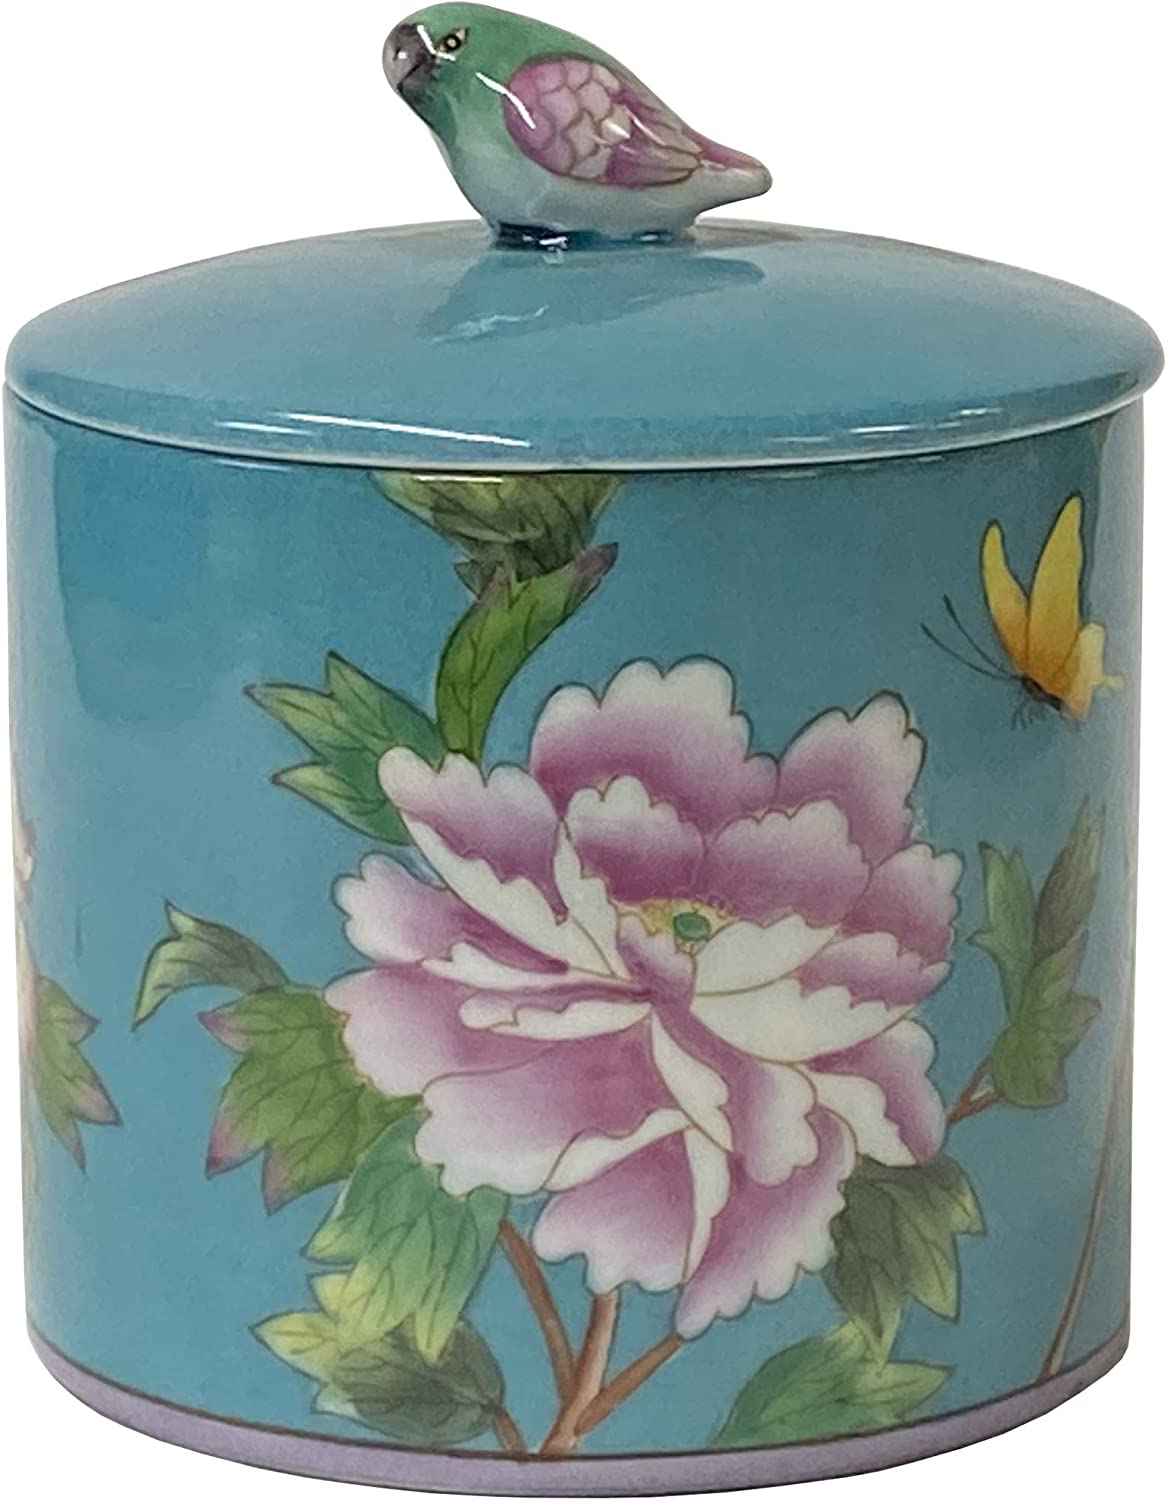 Contemporary Teal Blue Green Flower Box Round Painting Porcelain Tucson Max 78% OFF Mall